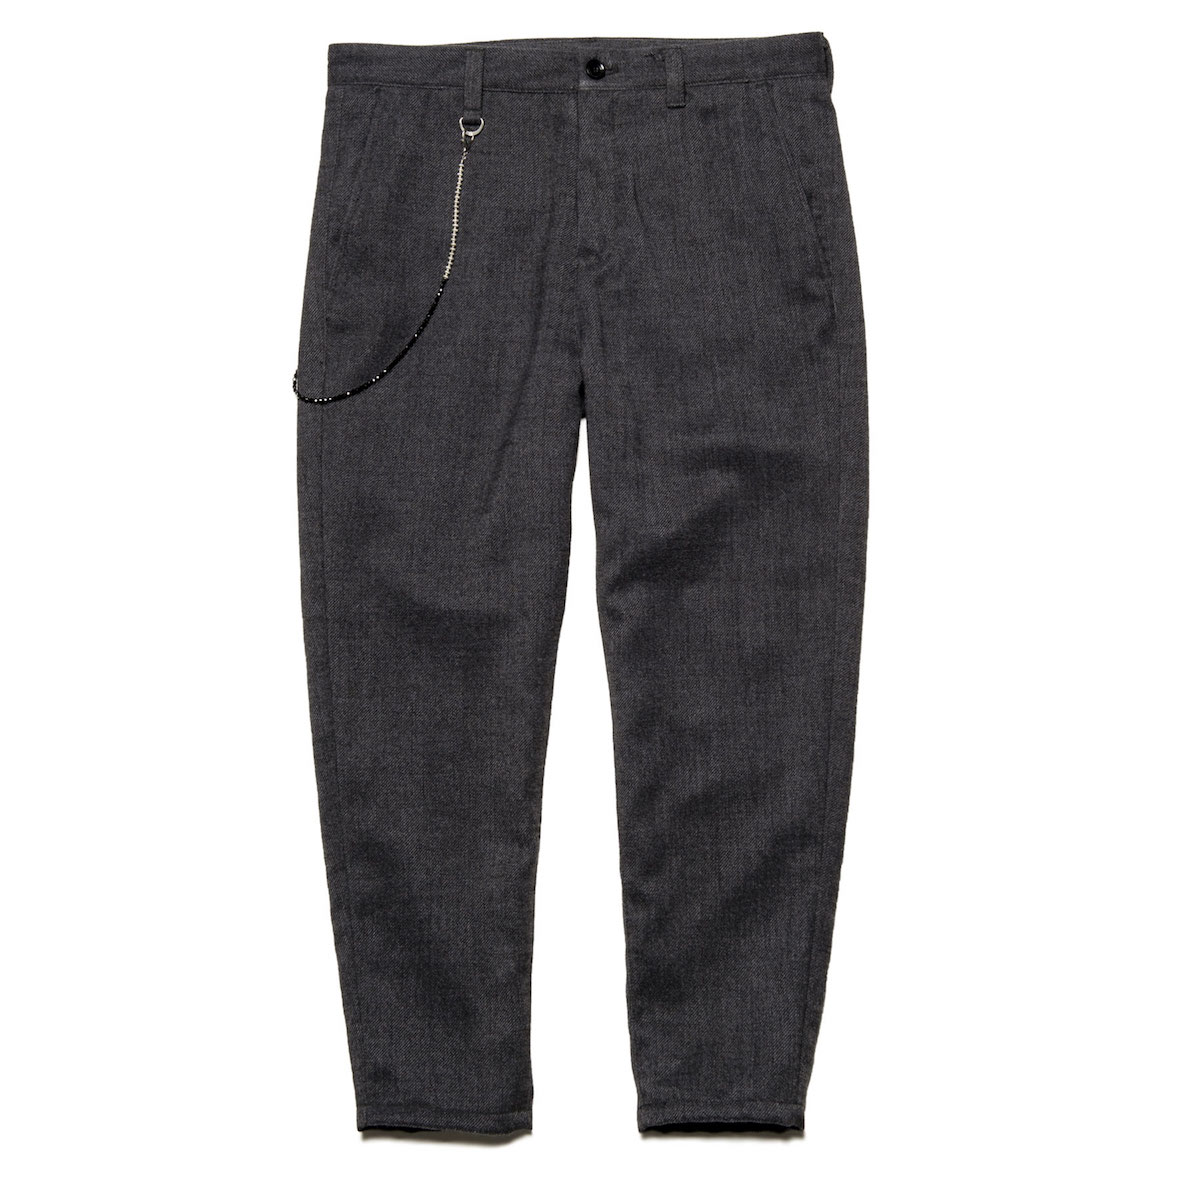 uniform experiment / POLYESTER TWEED CARROT FIT CROPPED PANTS (Charcoal Gray)